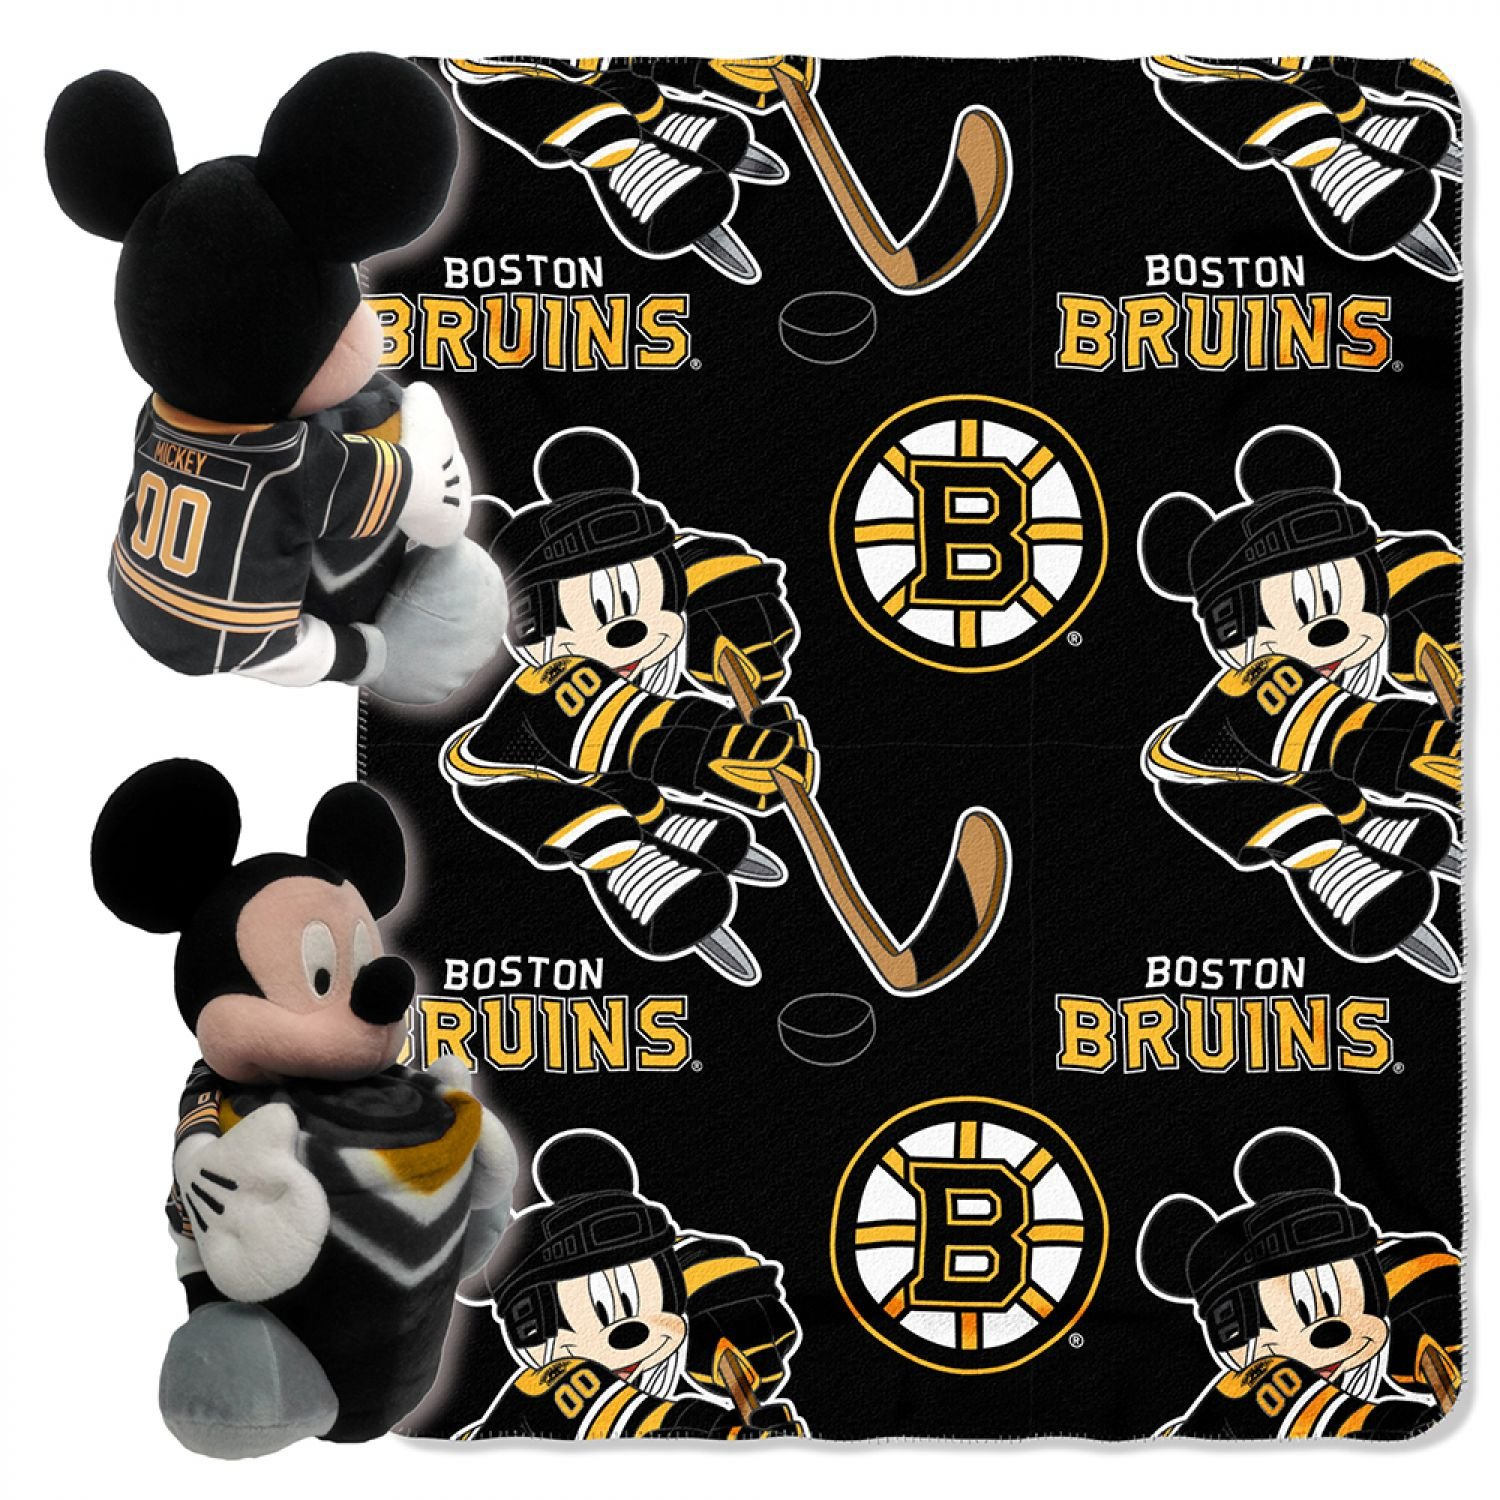 """Officially Licensed NHL """"Ice Warriors"""" Co-Branded Disney's Mickey Mouse Hugger and Fleece Throw Blanket Set, 40"""" x 50"""", Multi Color"""